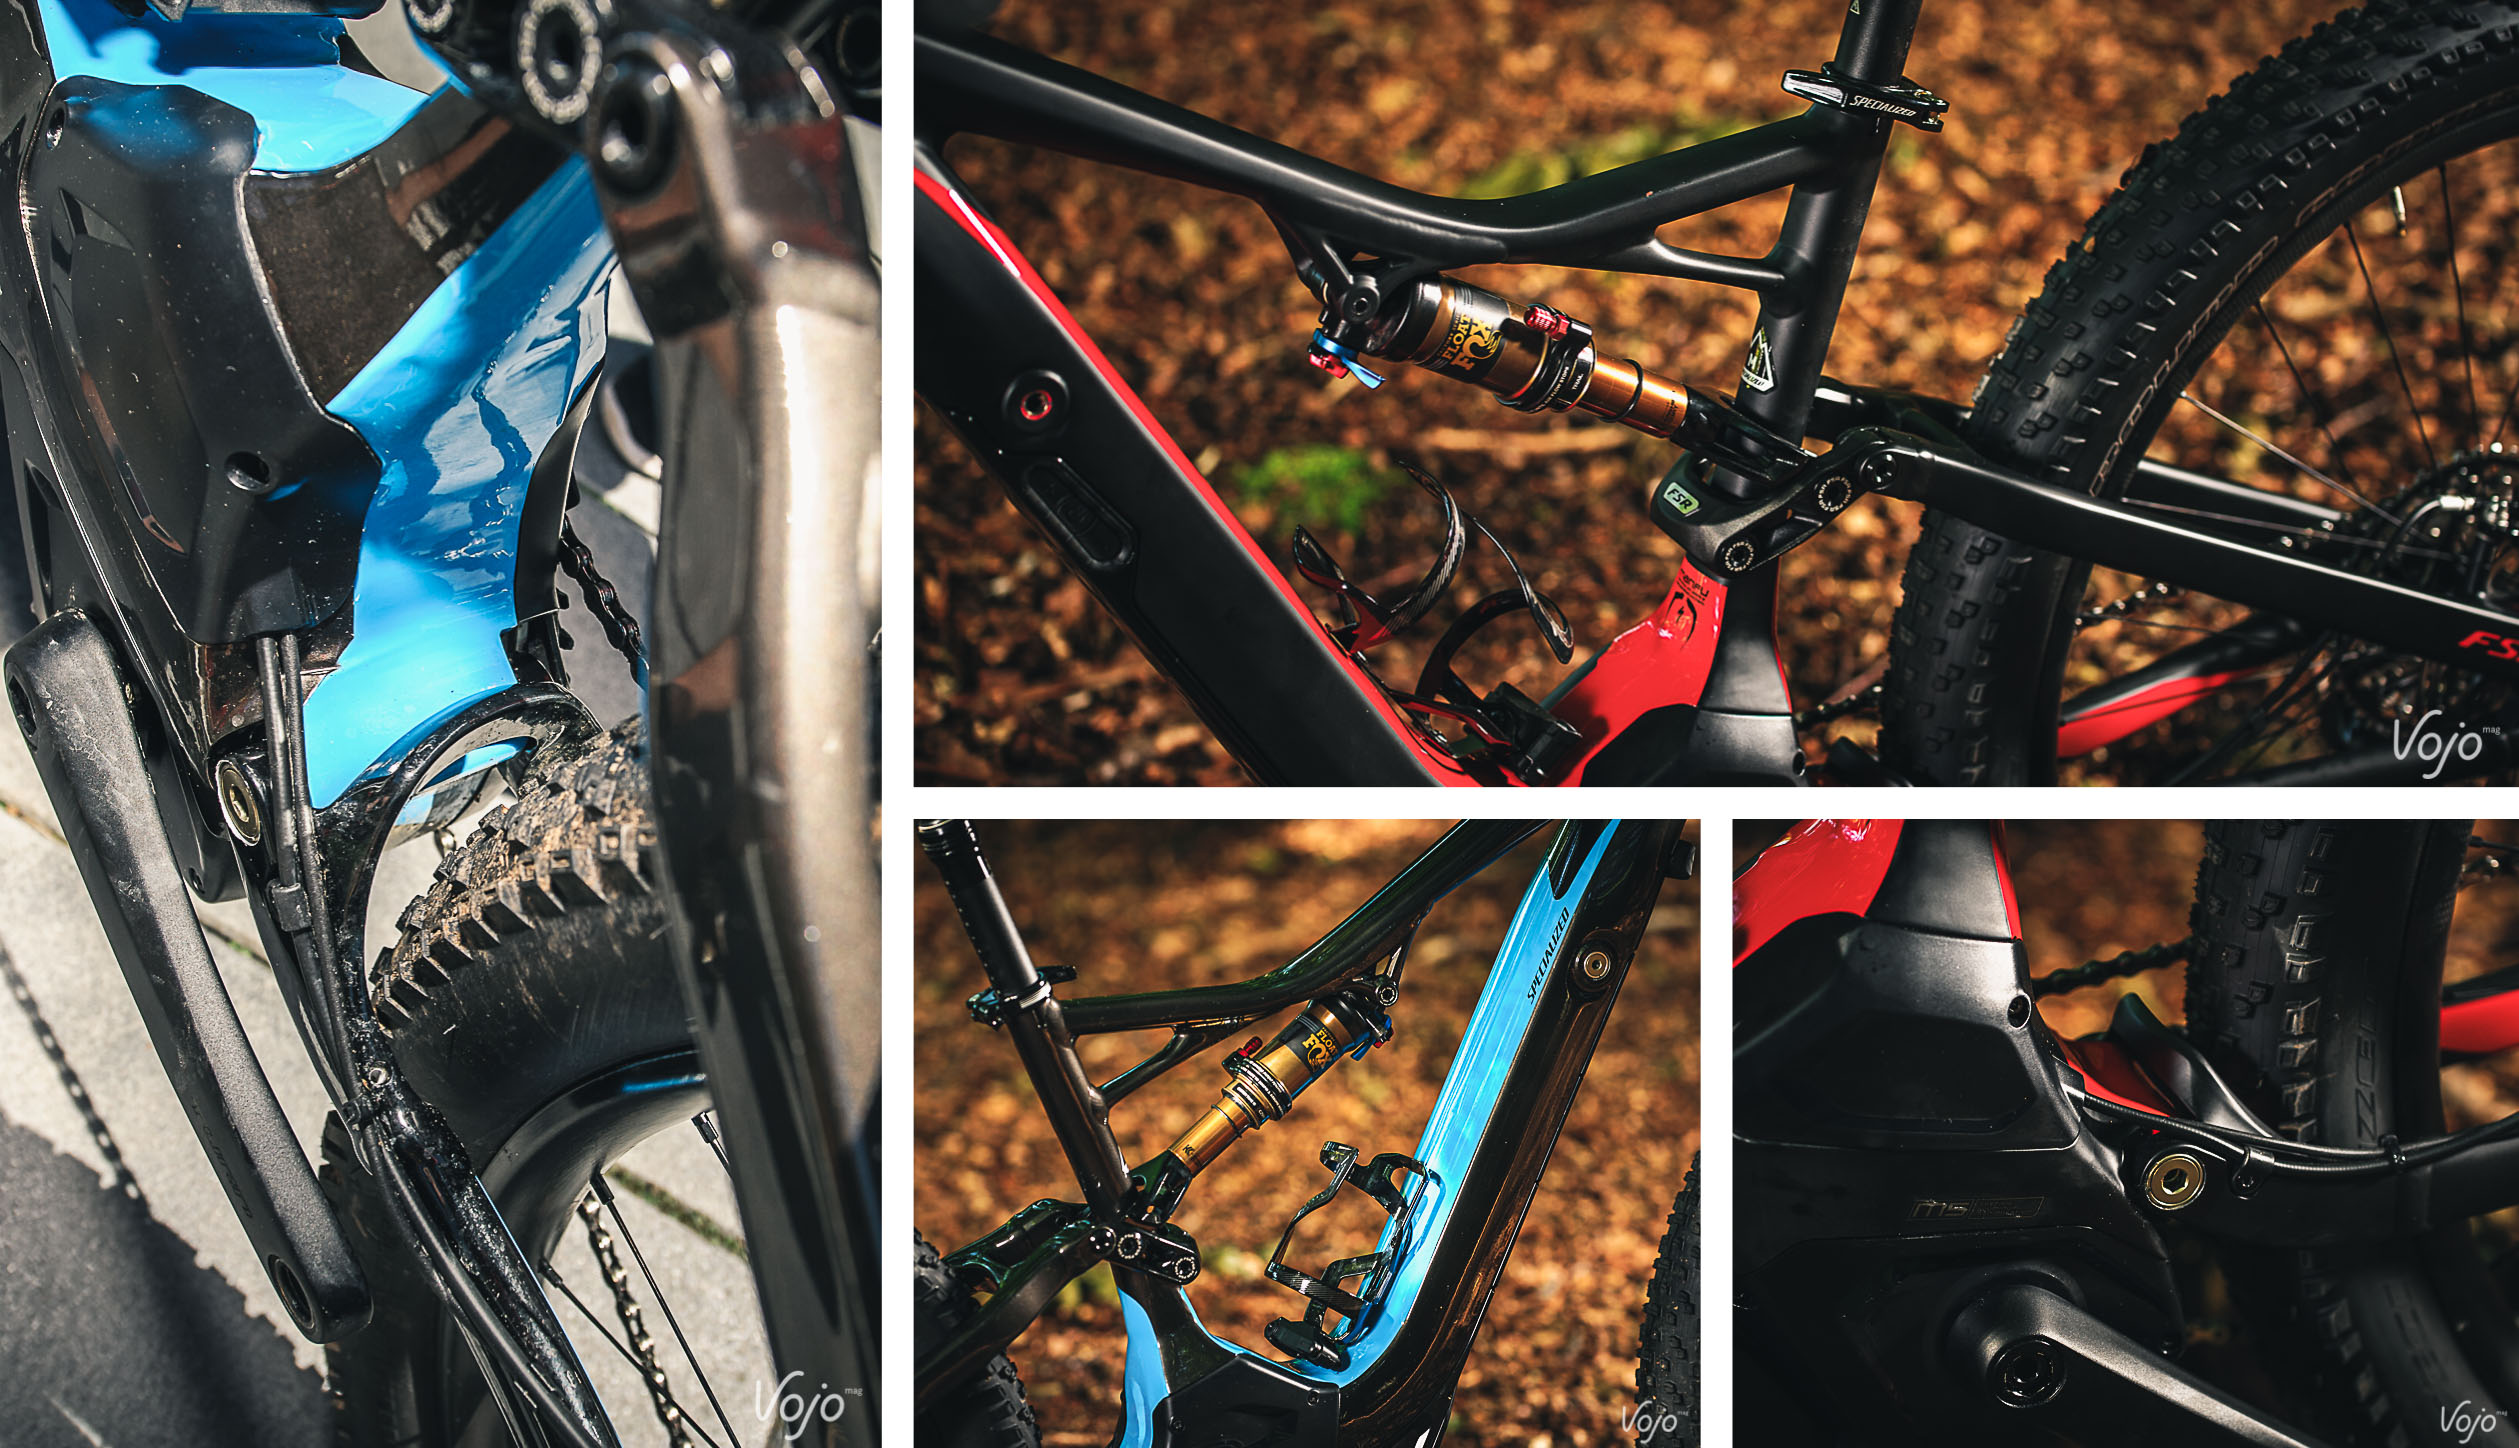 9-Specialized_Turbo_Levo_FSR_Copyright_Beart_VojoMag-1